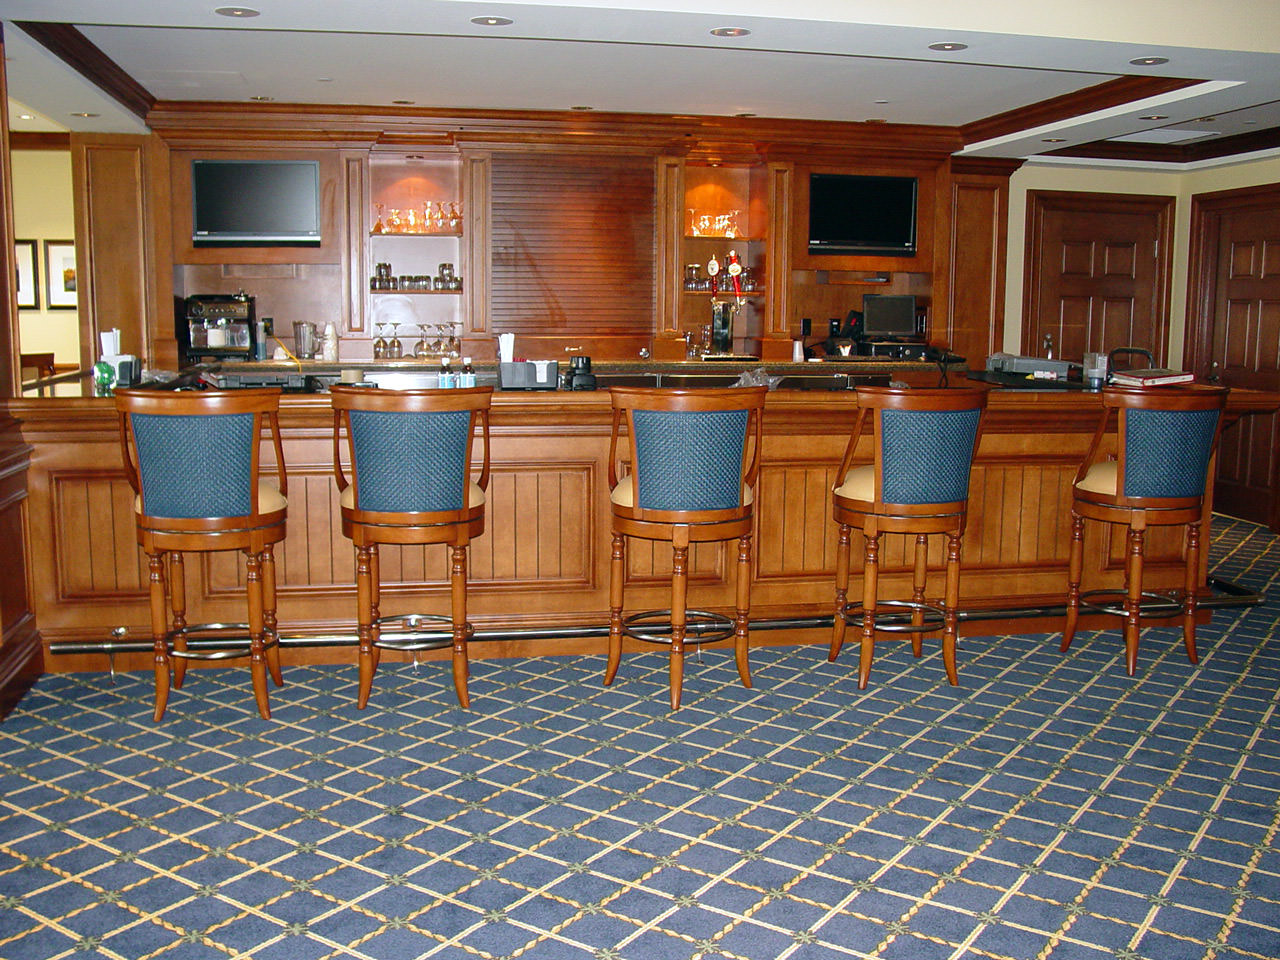 10 Grille Room Bar, i.e. 19th Hole